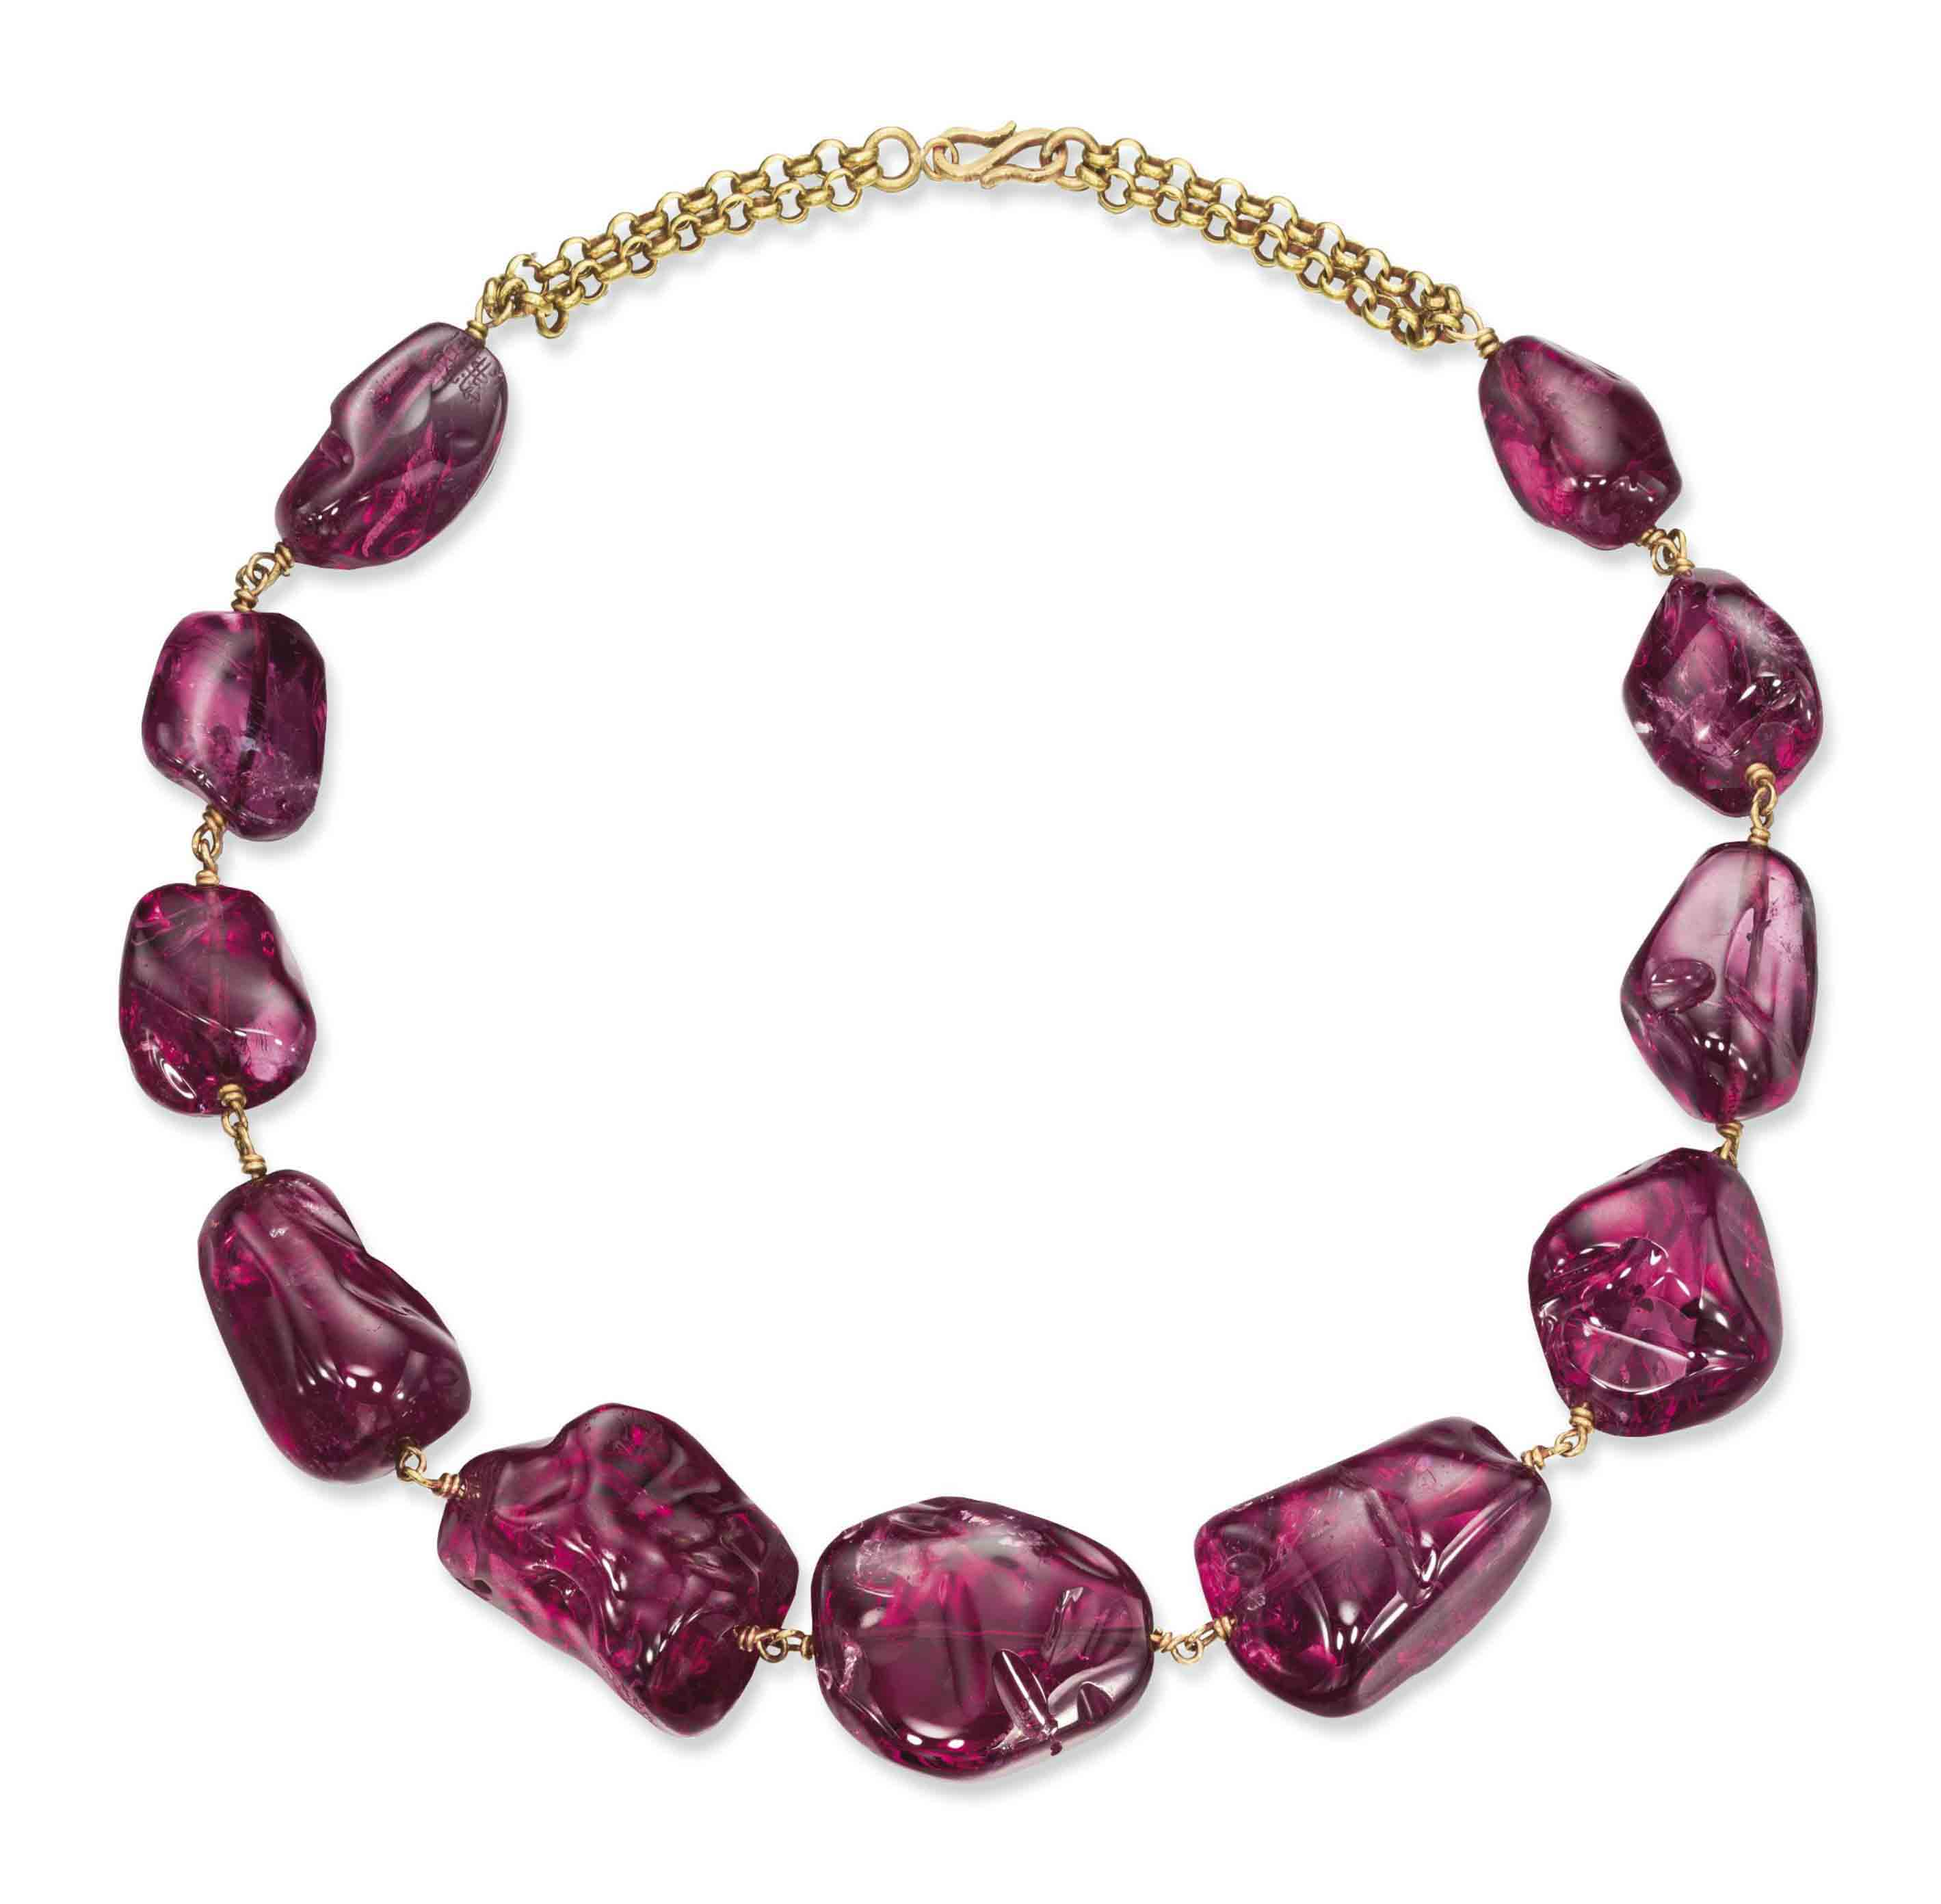 AN IMPERIAL MUGHAL SPINEL NECKLACE